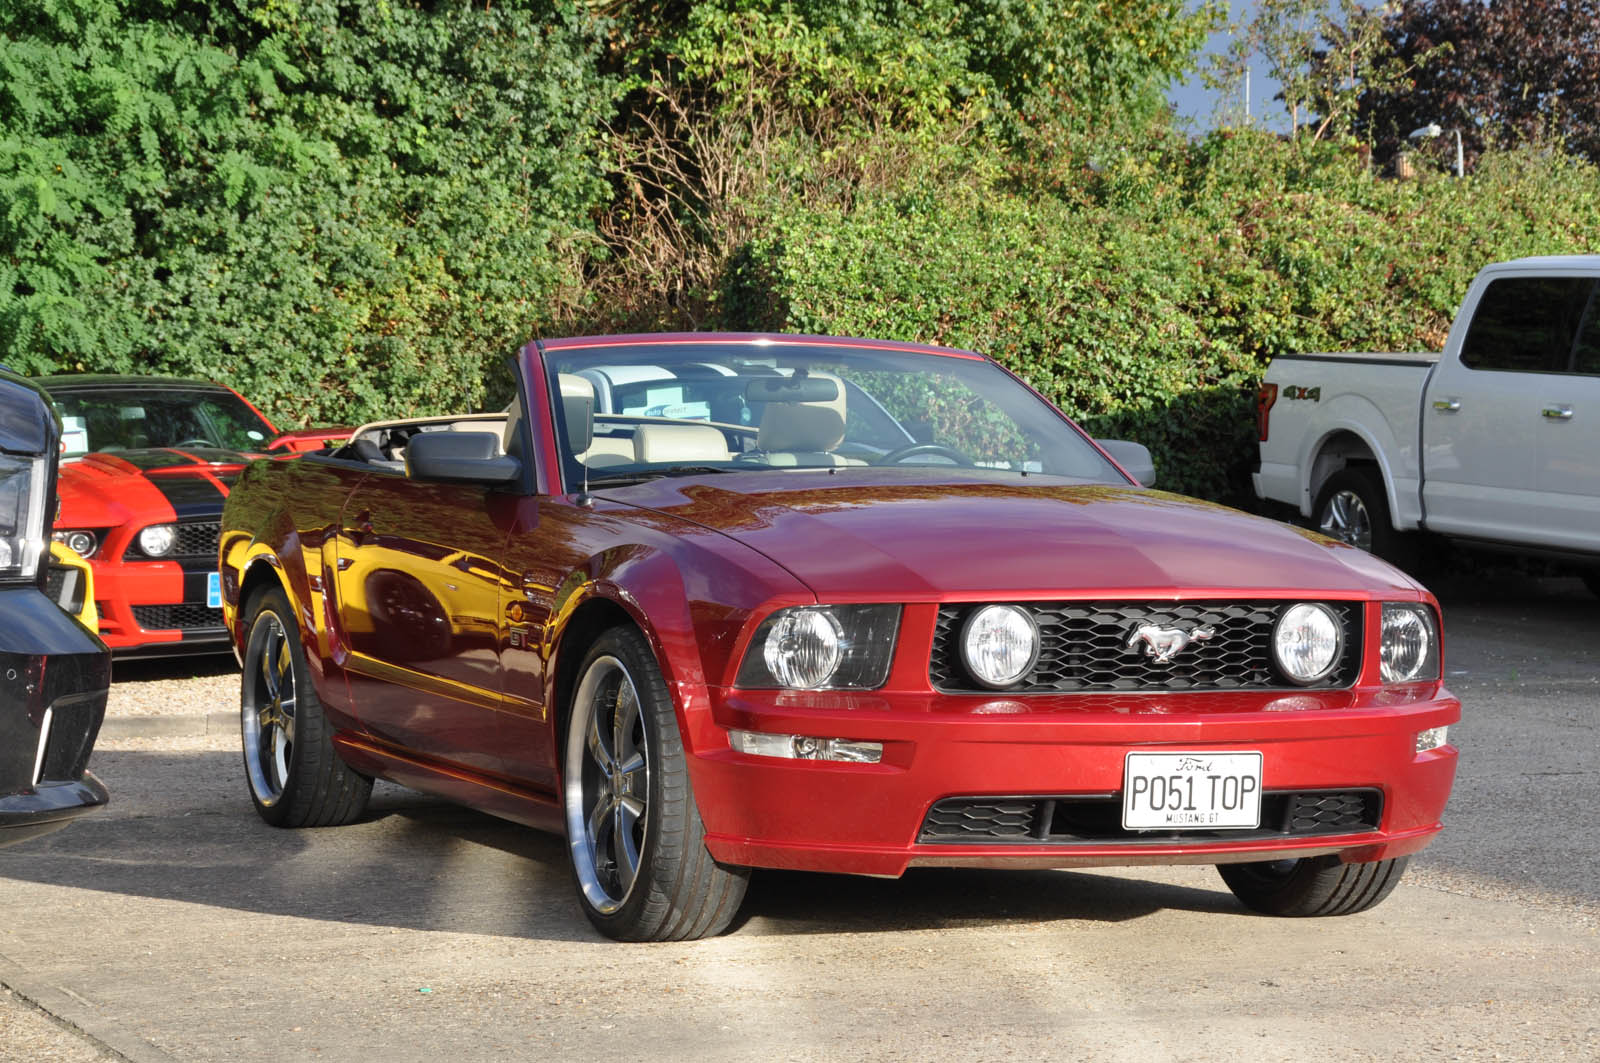 2005 mustang gt convertible v8 auto 22 000 miles david. Black Bedroom Furniture Sets. Home Design Ideas